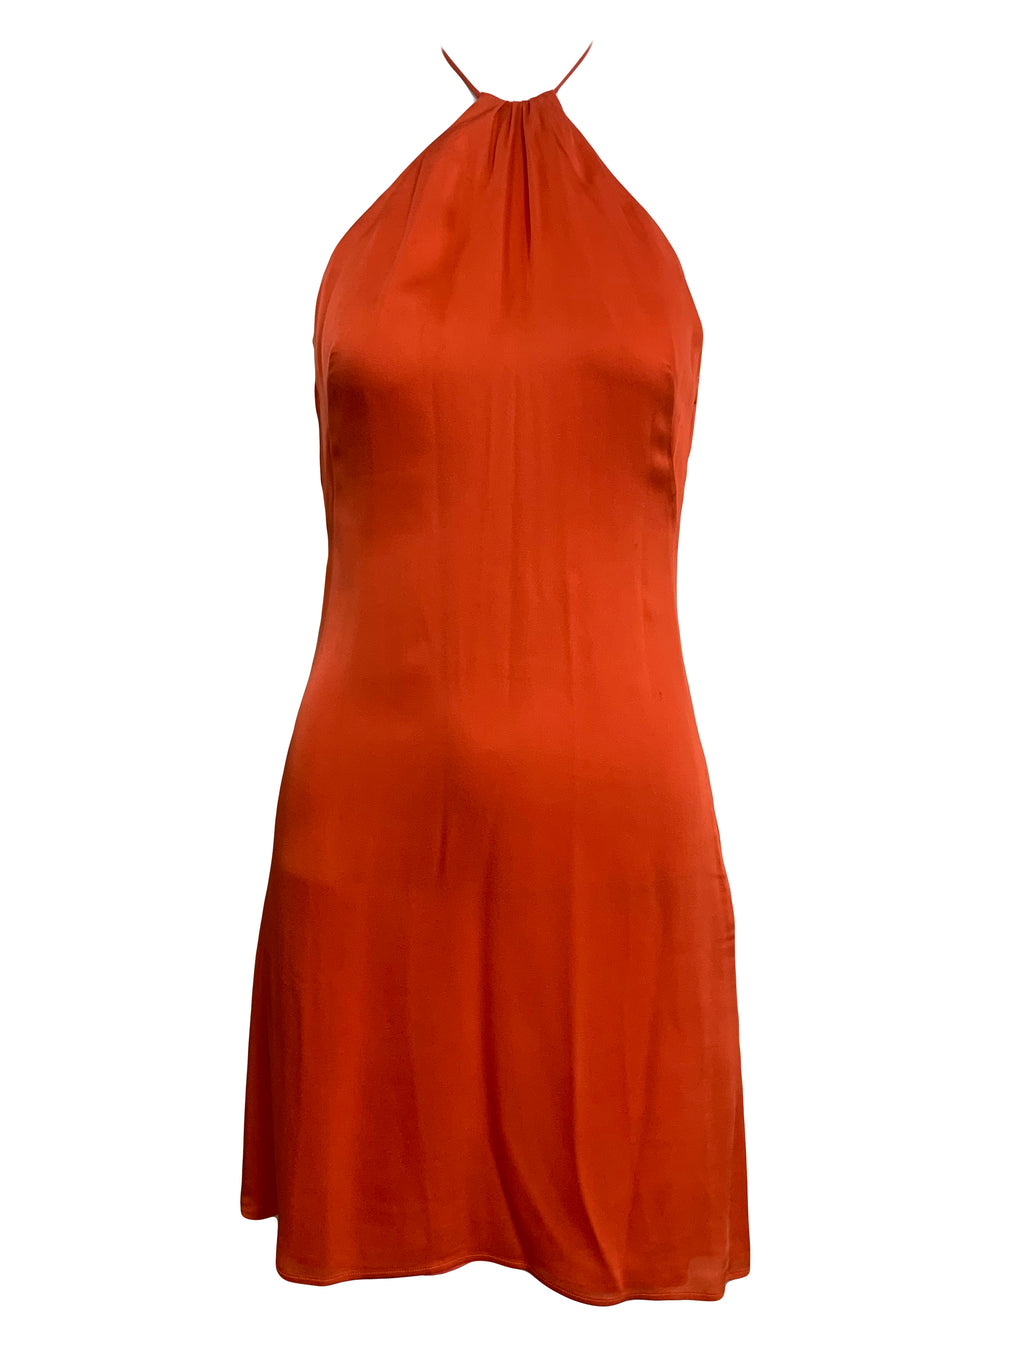 Valentino Orange Silk Mini Dress FRONT 1 of 4